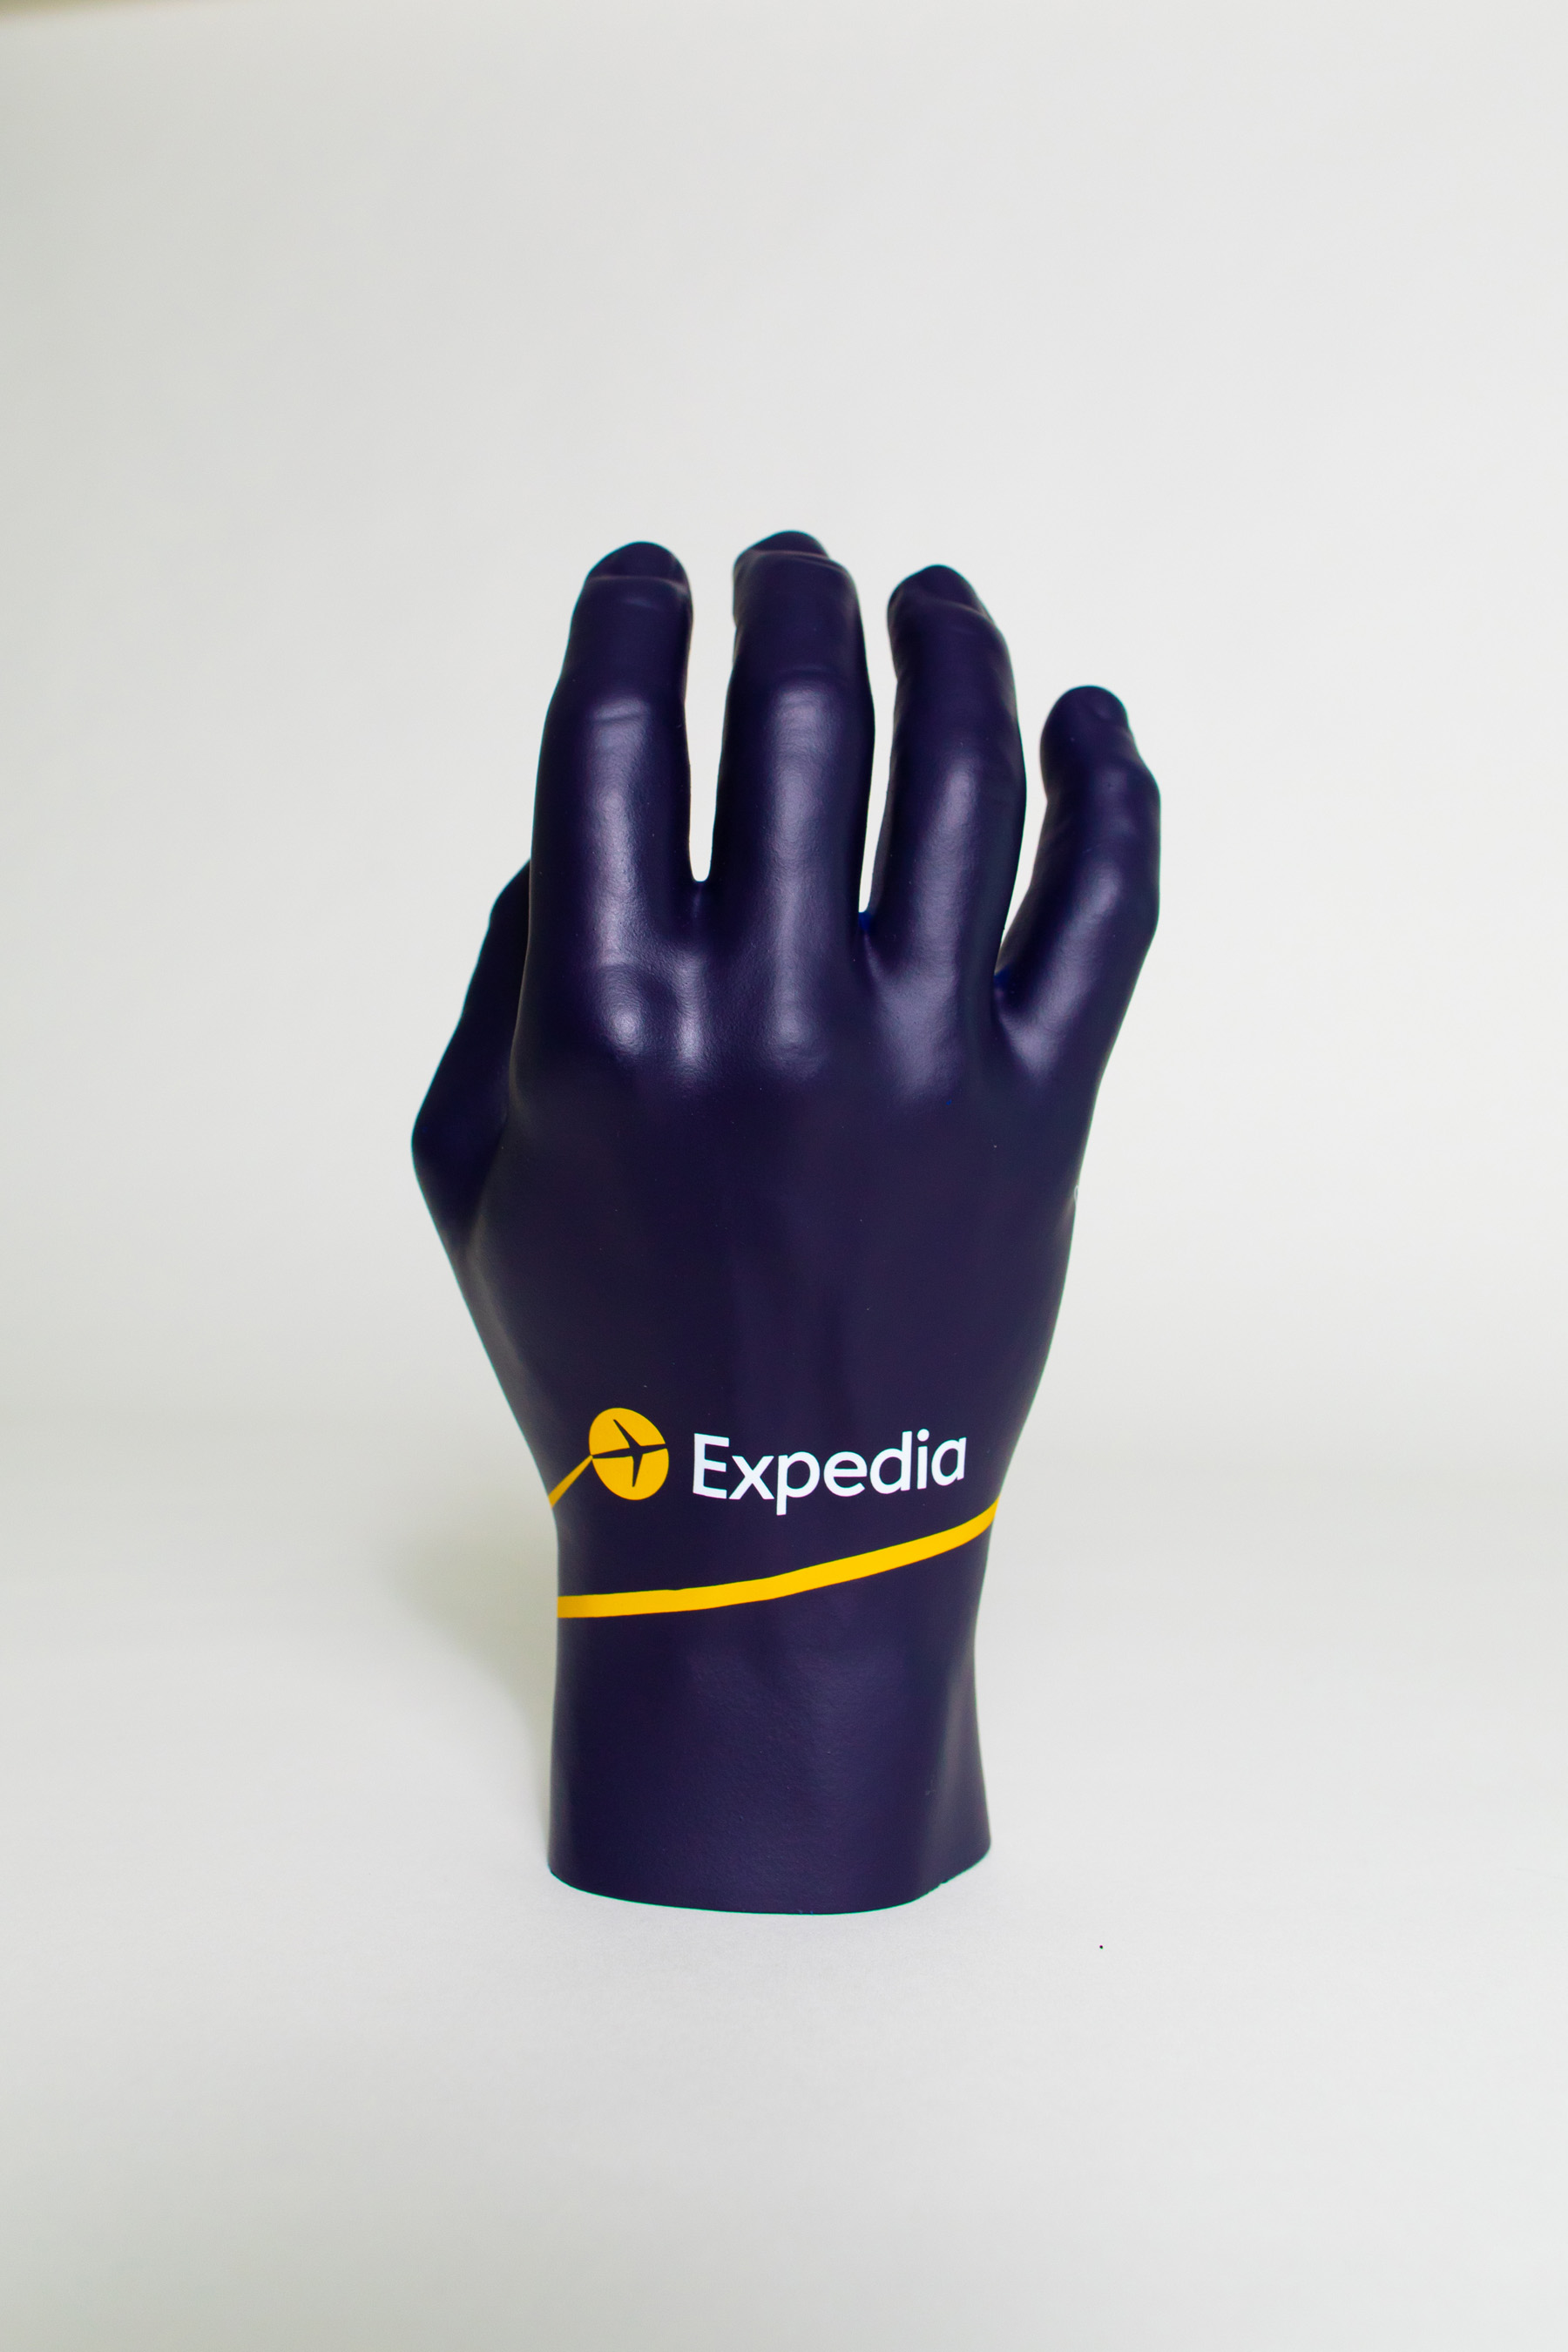 The Expedia Helping Hand was made using a 3D printer and stereolithography technology, then individually painted with custom artwork